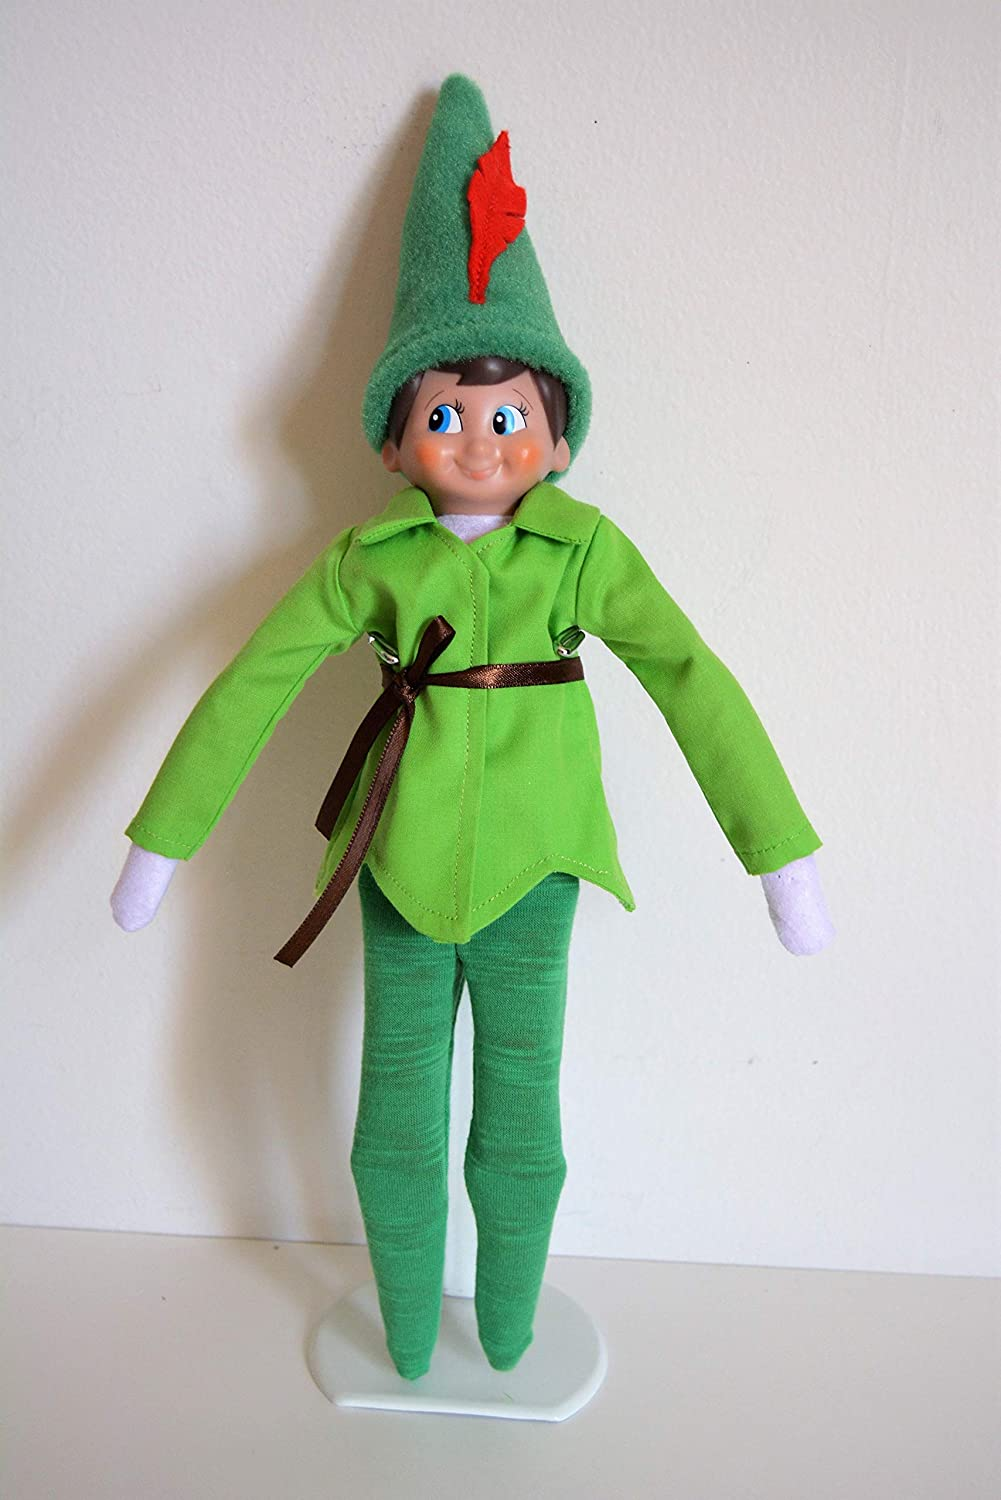 Handmade Doll Clothes Peter Pan Costumes fits the Elf Soft Doll Christmas